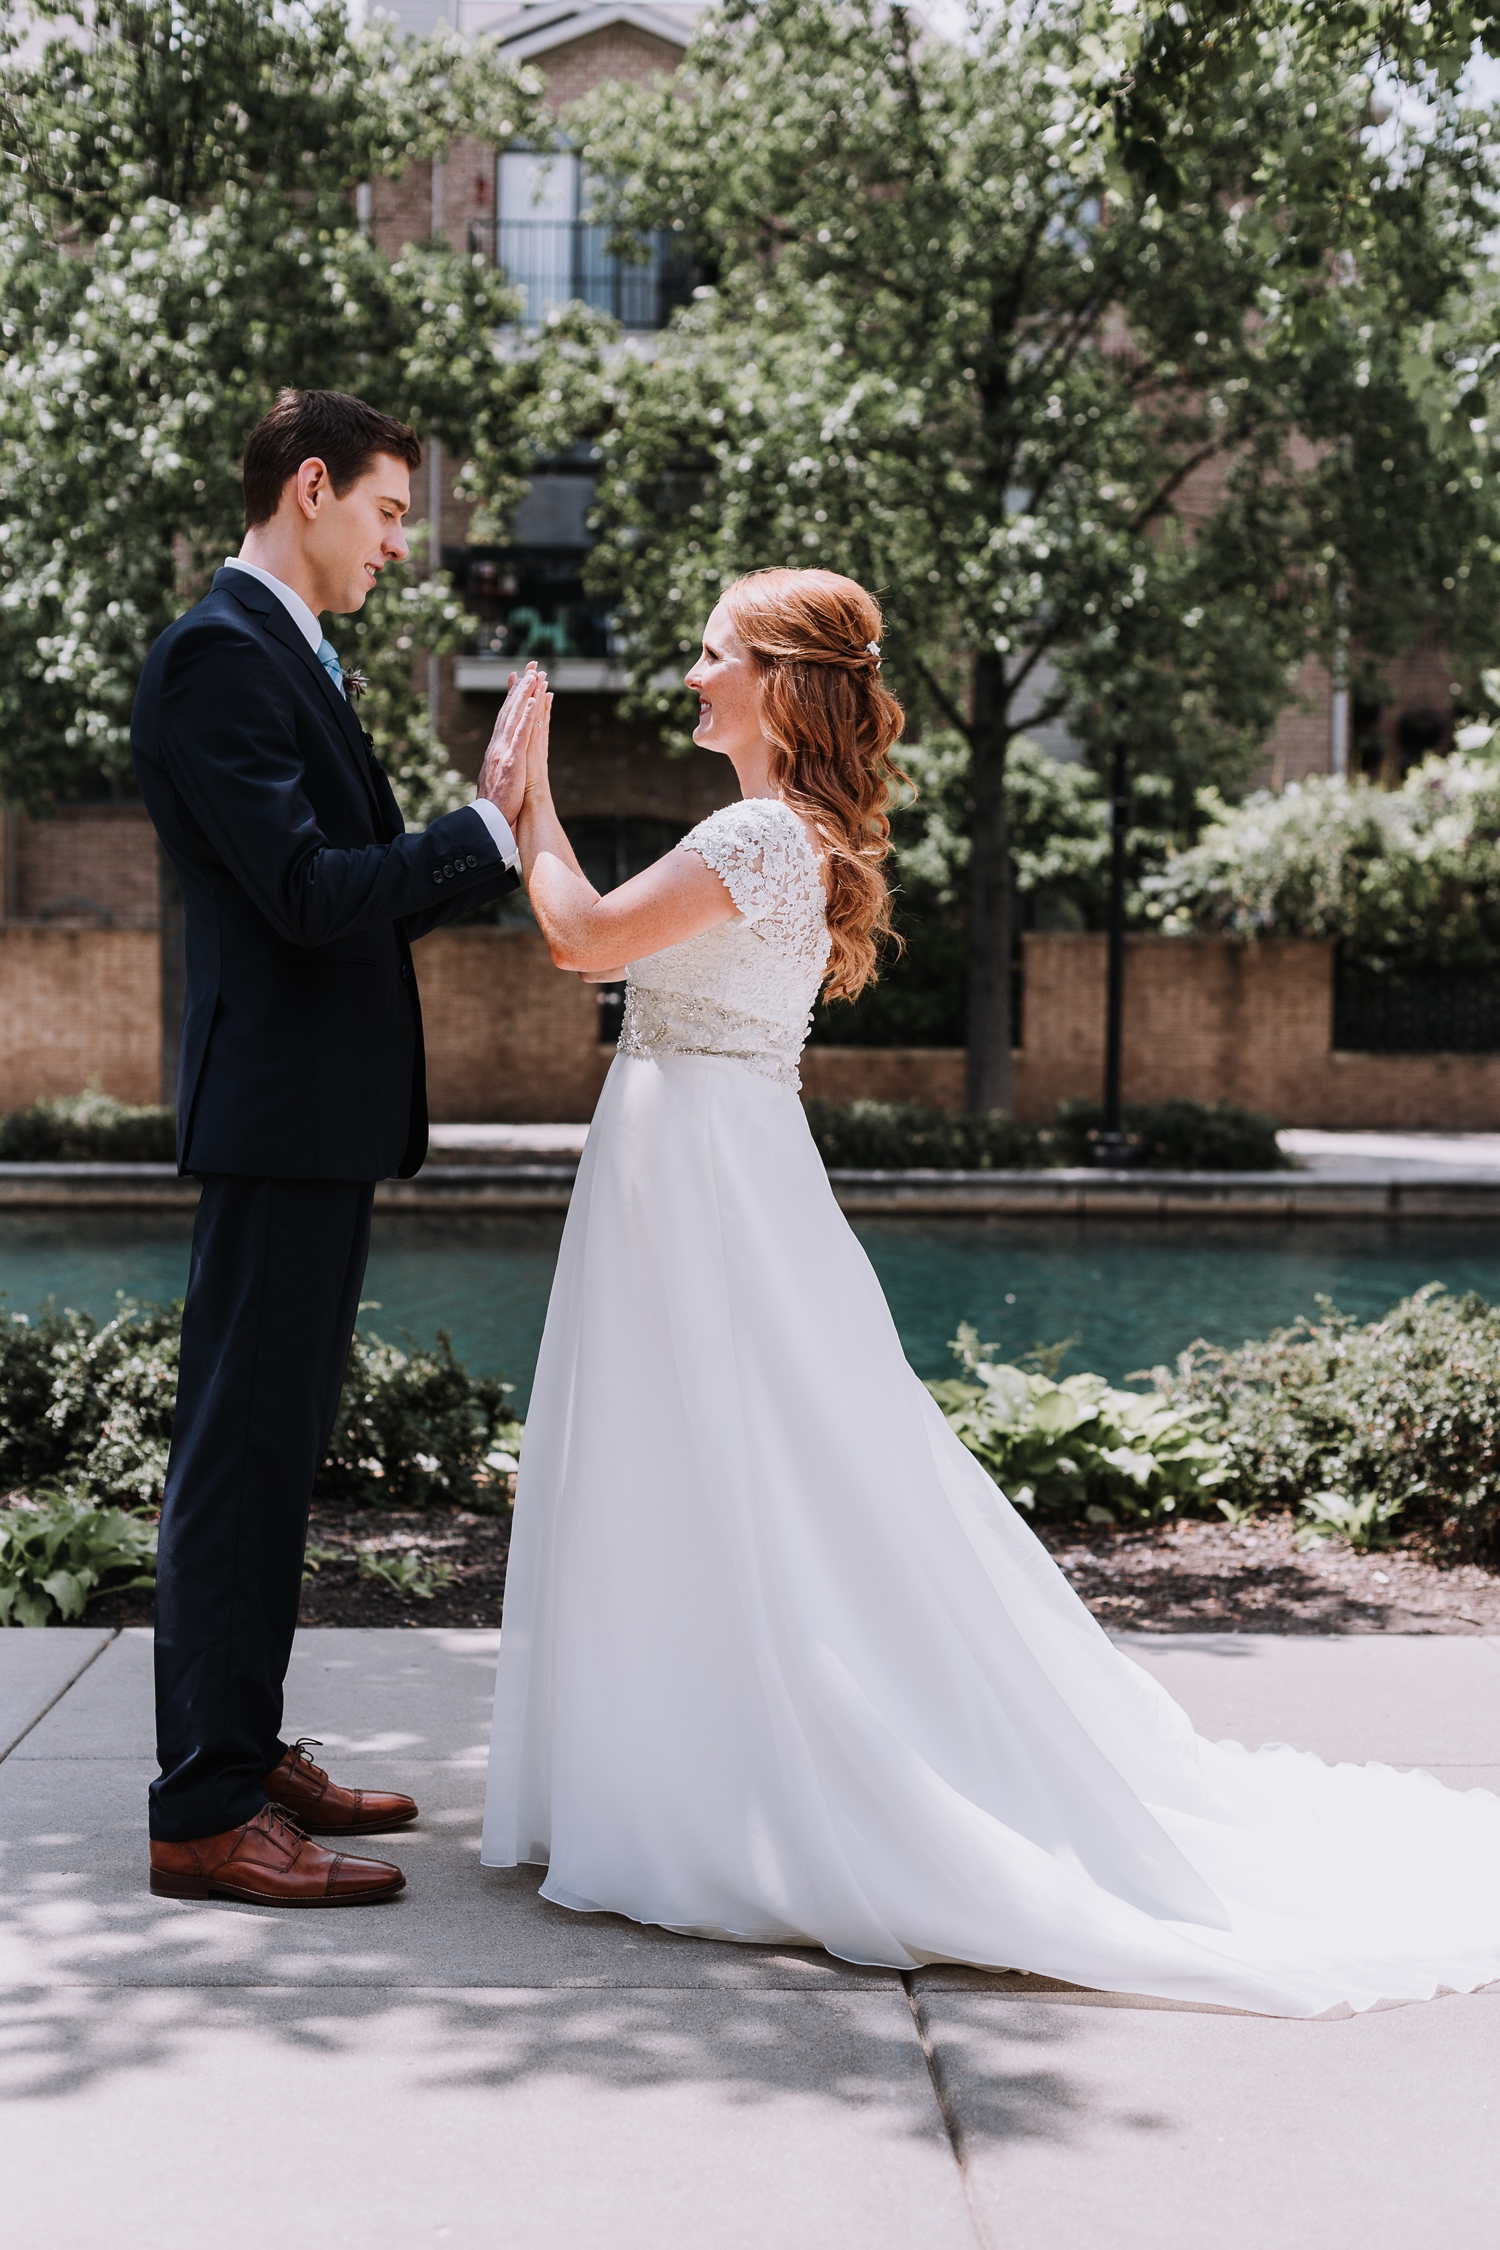 First Look Photos - Online Groom Tux Rentals - Classic Indianapolis Wedding - Canal 337 Wedding - The Overwhelmed Bride Wedding Blog